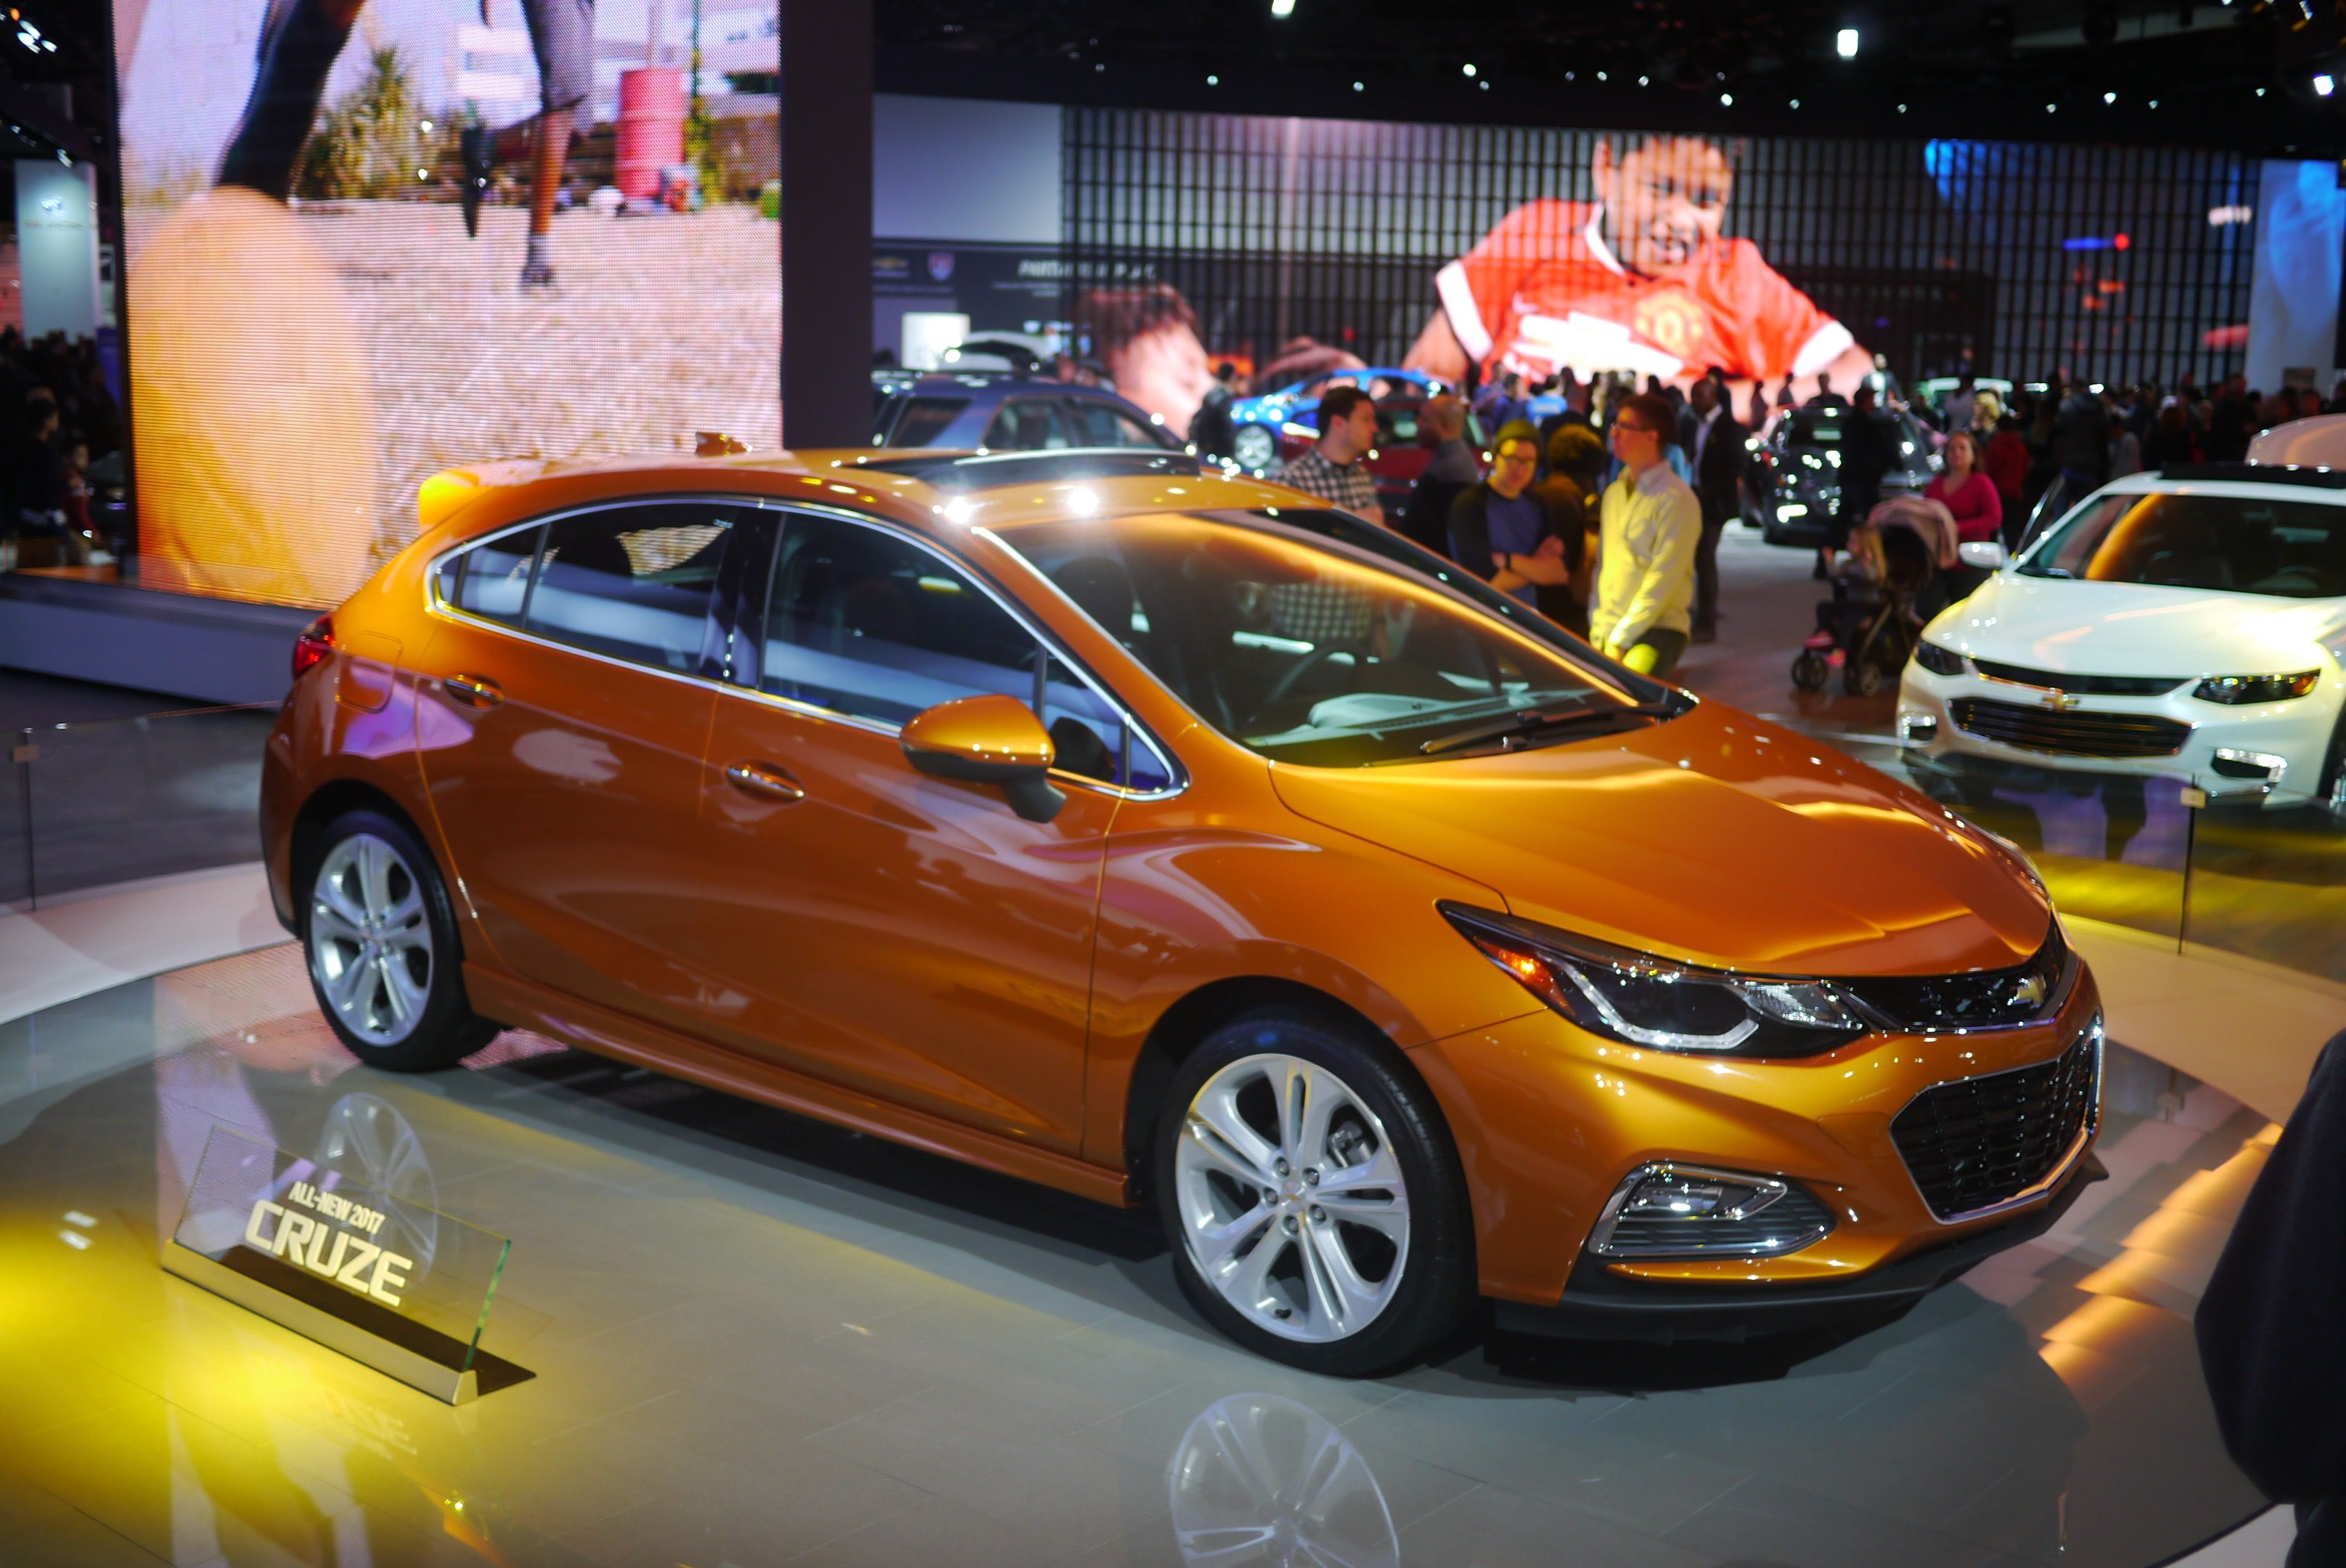 2017 Chevy Cruze Hatch at NAIAS 2016 the Detroit Auto Show